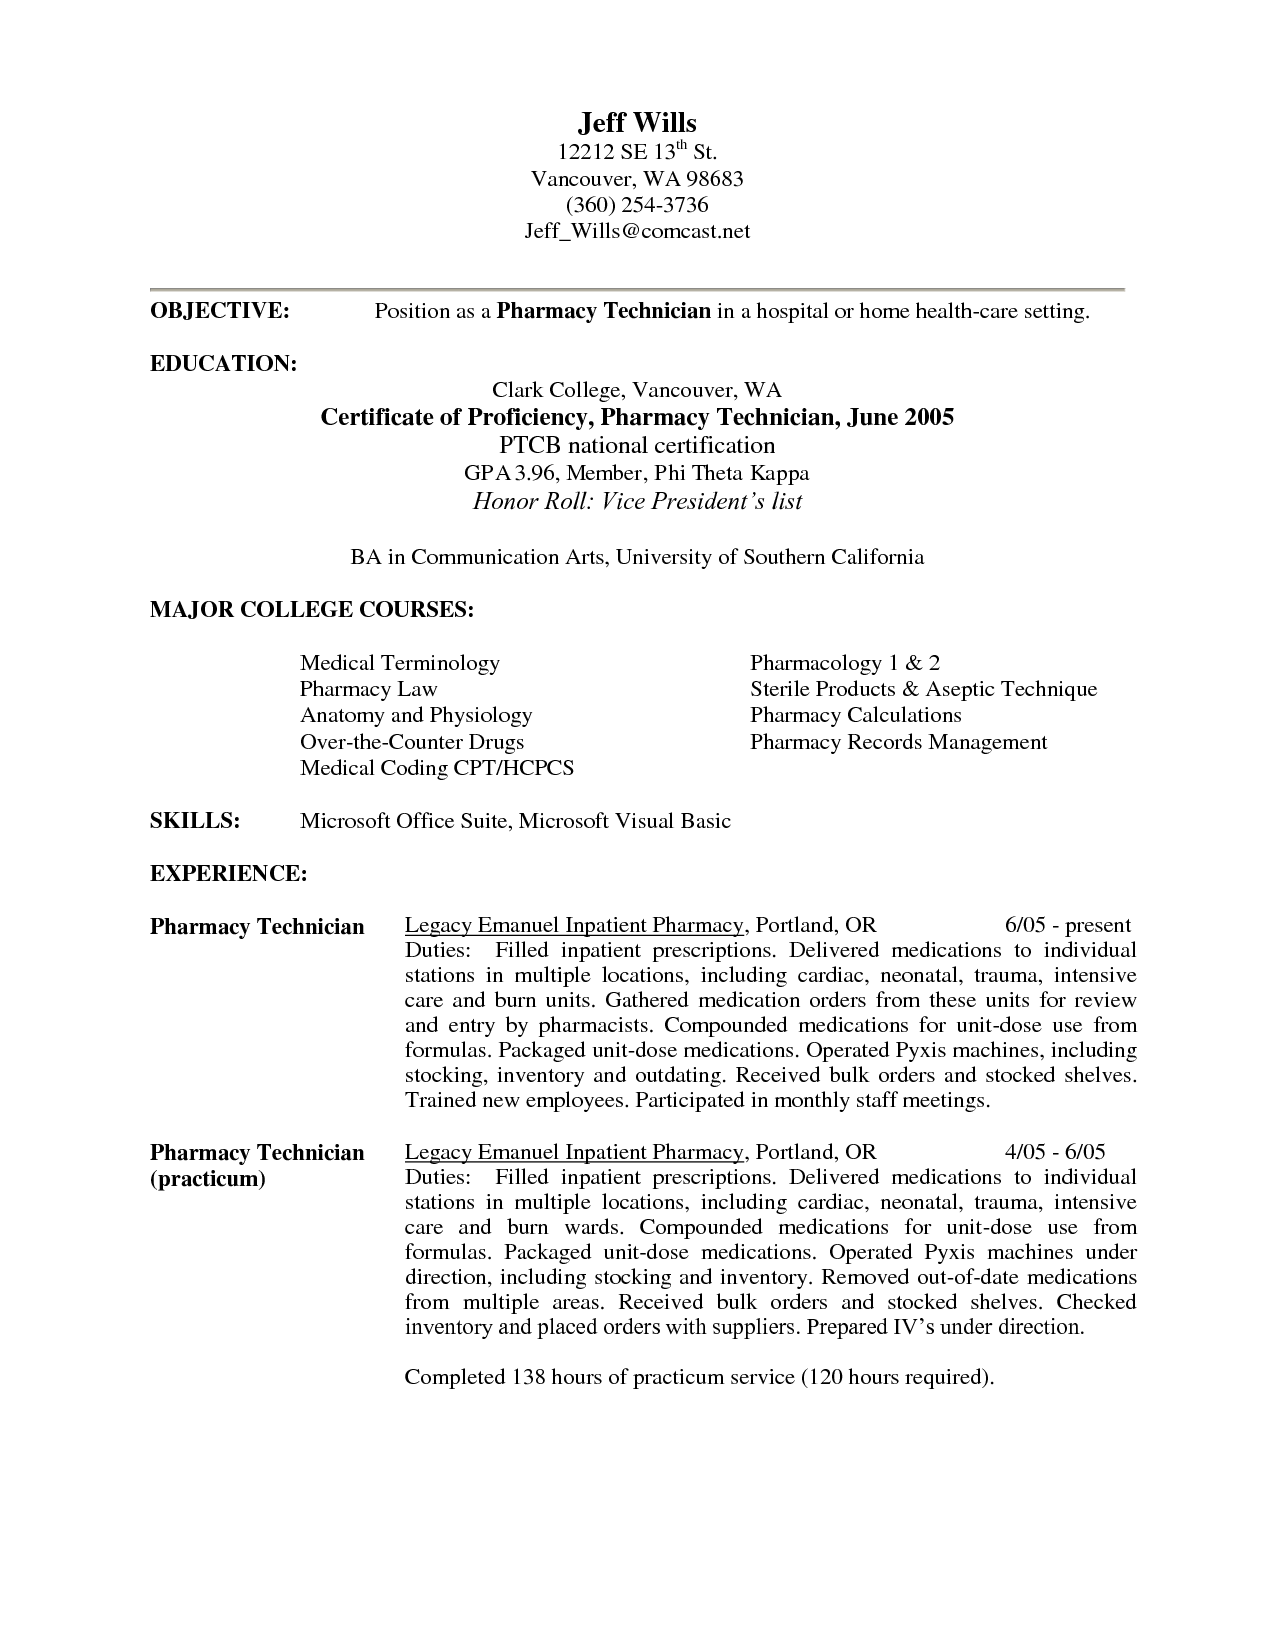 Pharmacy Technician Cover Letter Pharmacy Technician Cover Letter Sample In  21 Mesmerizing Examples .  Cover Letter For Pharmacy Technician